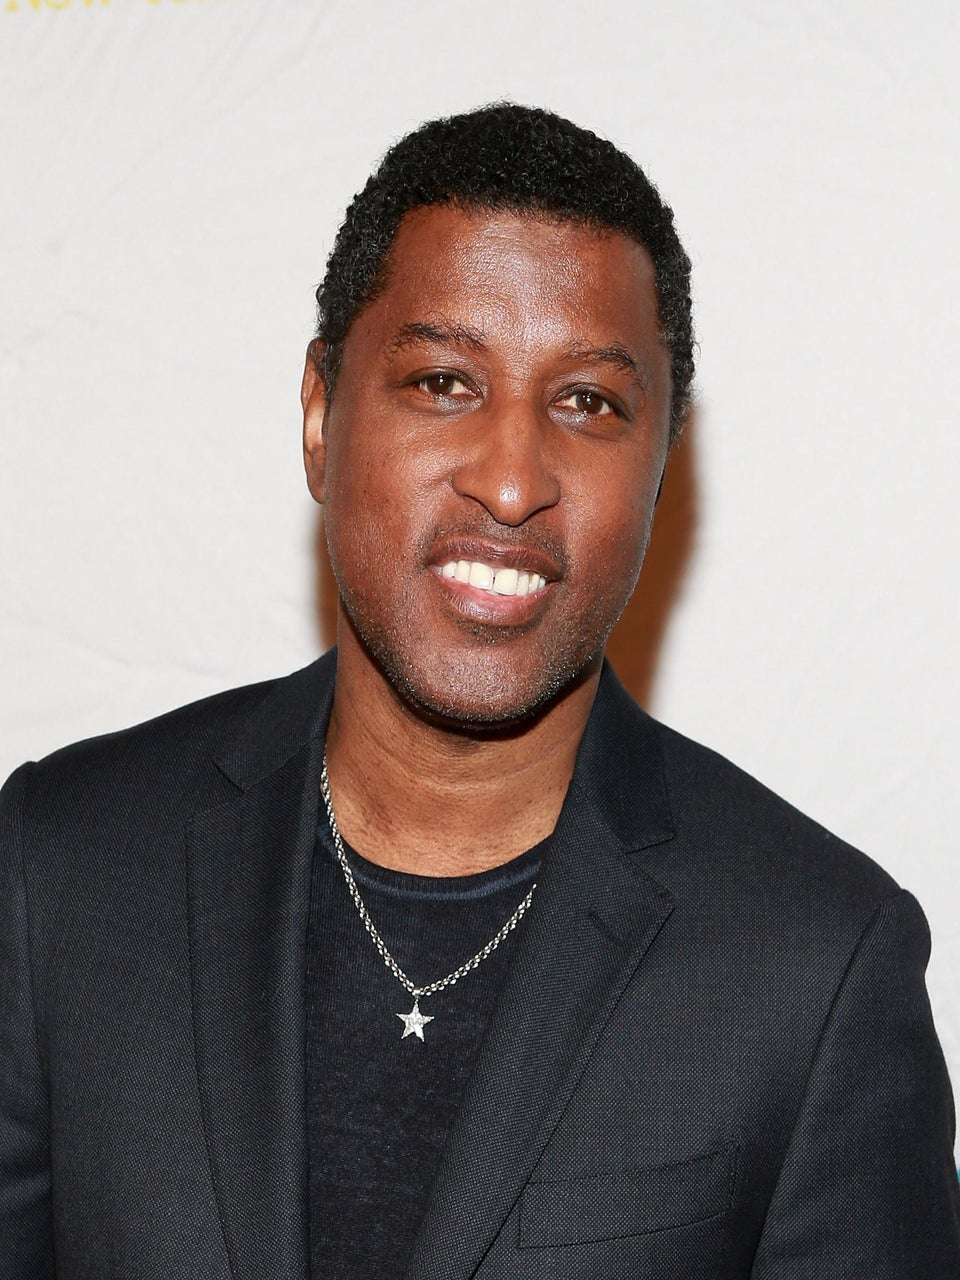 18 Classic Love Songs We Can Thank Babyface For